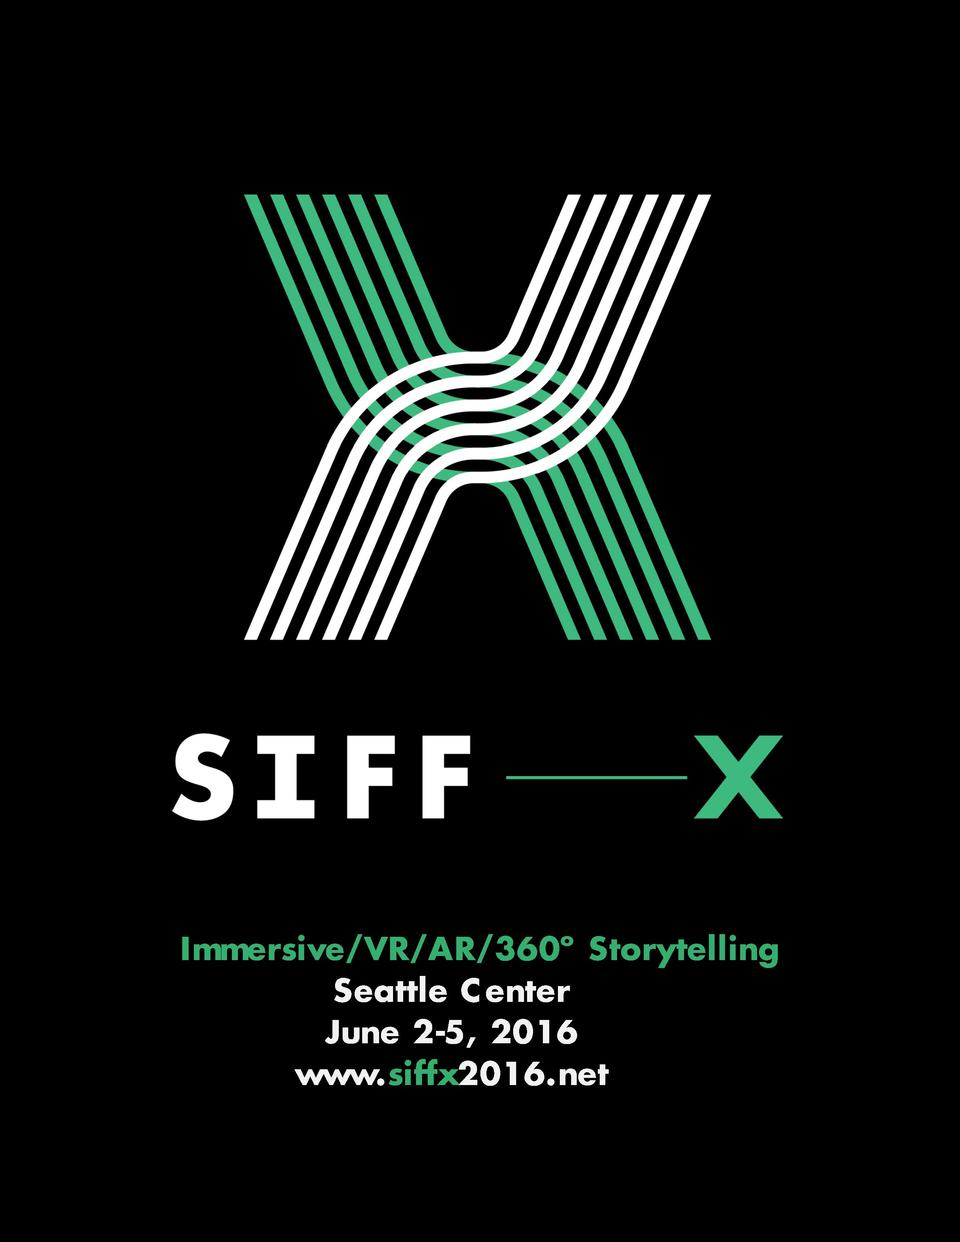 Immersive VR AR 360   Storytelling Seattle C enter June 2-5, 2016 www.siffx2016.net